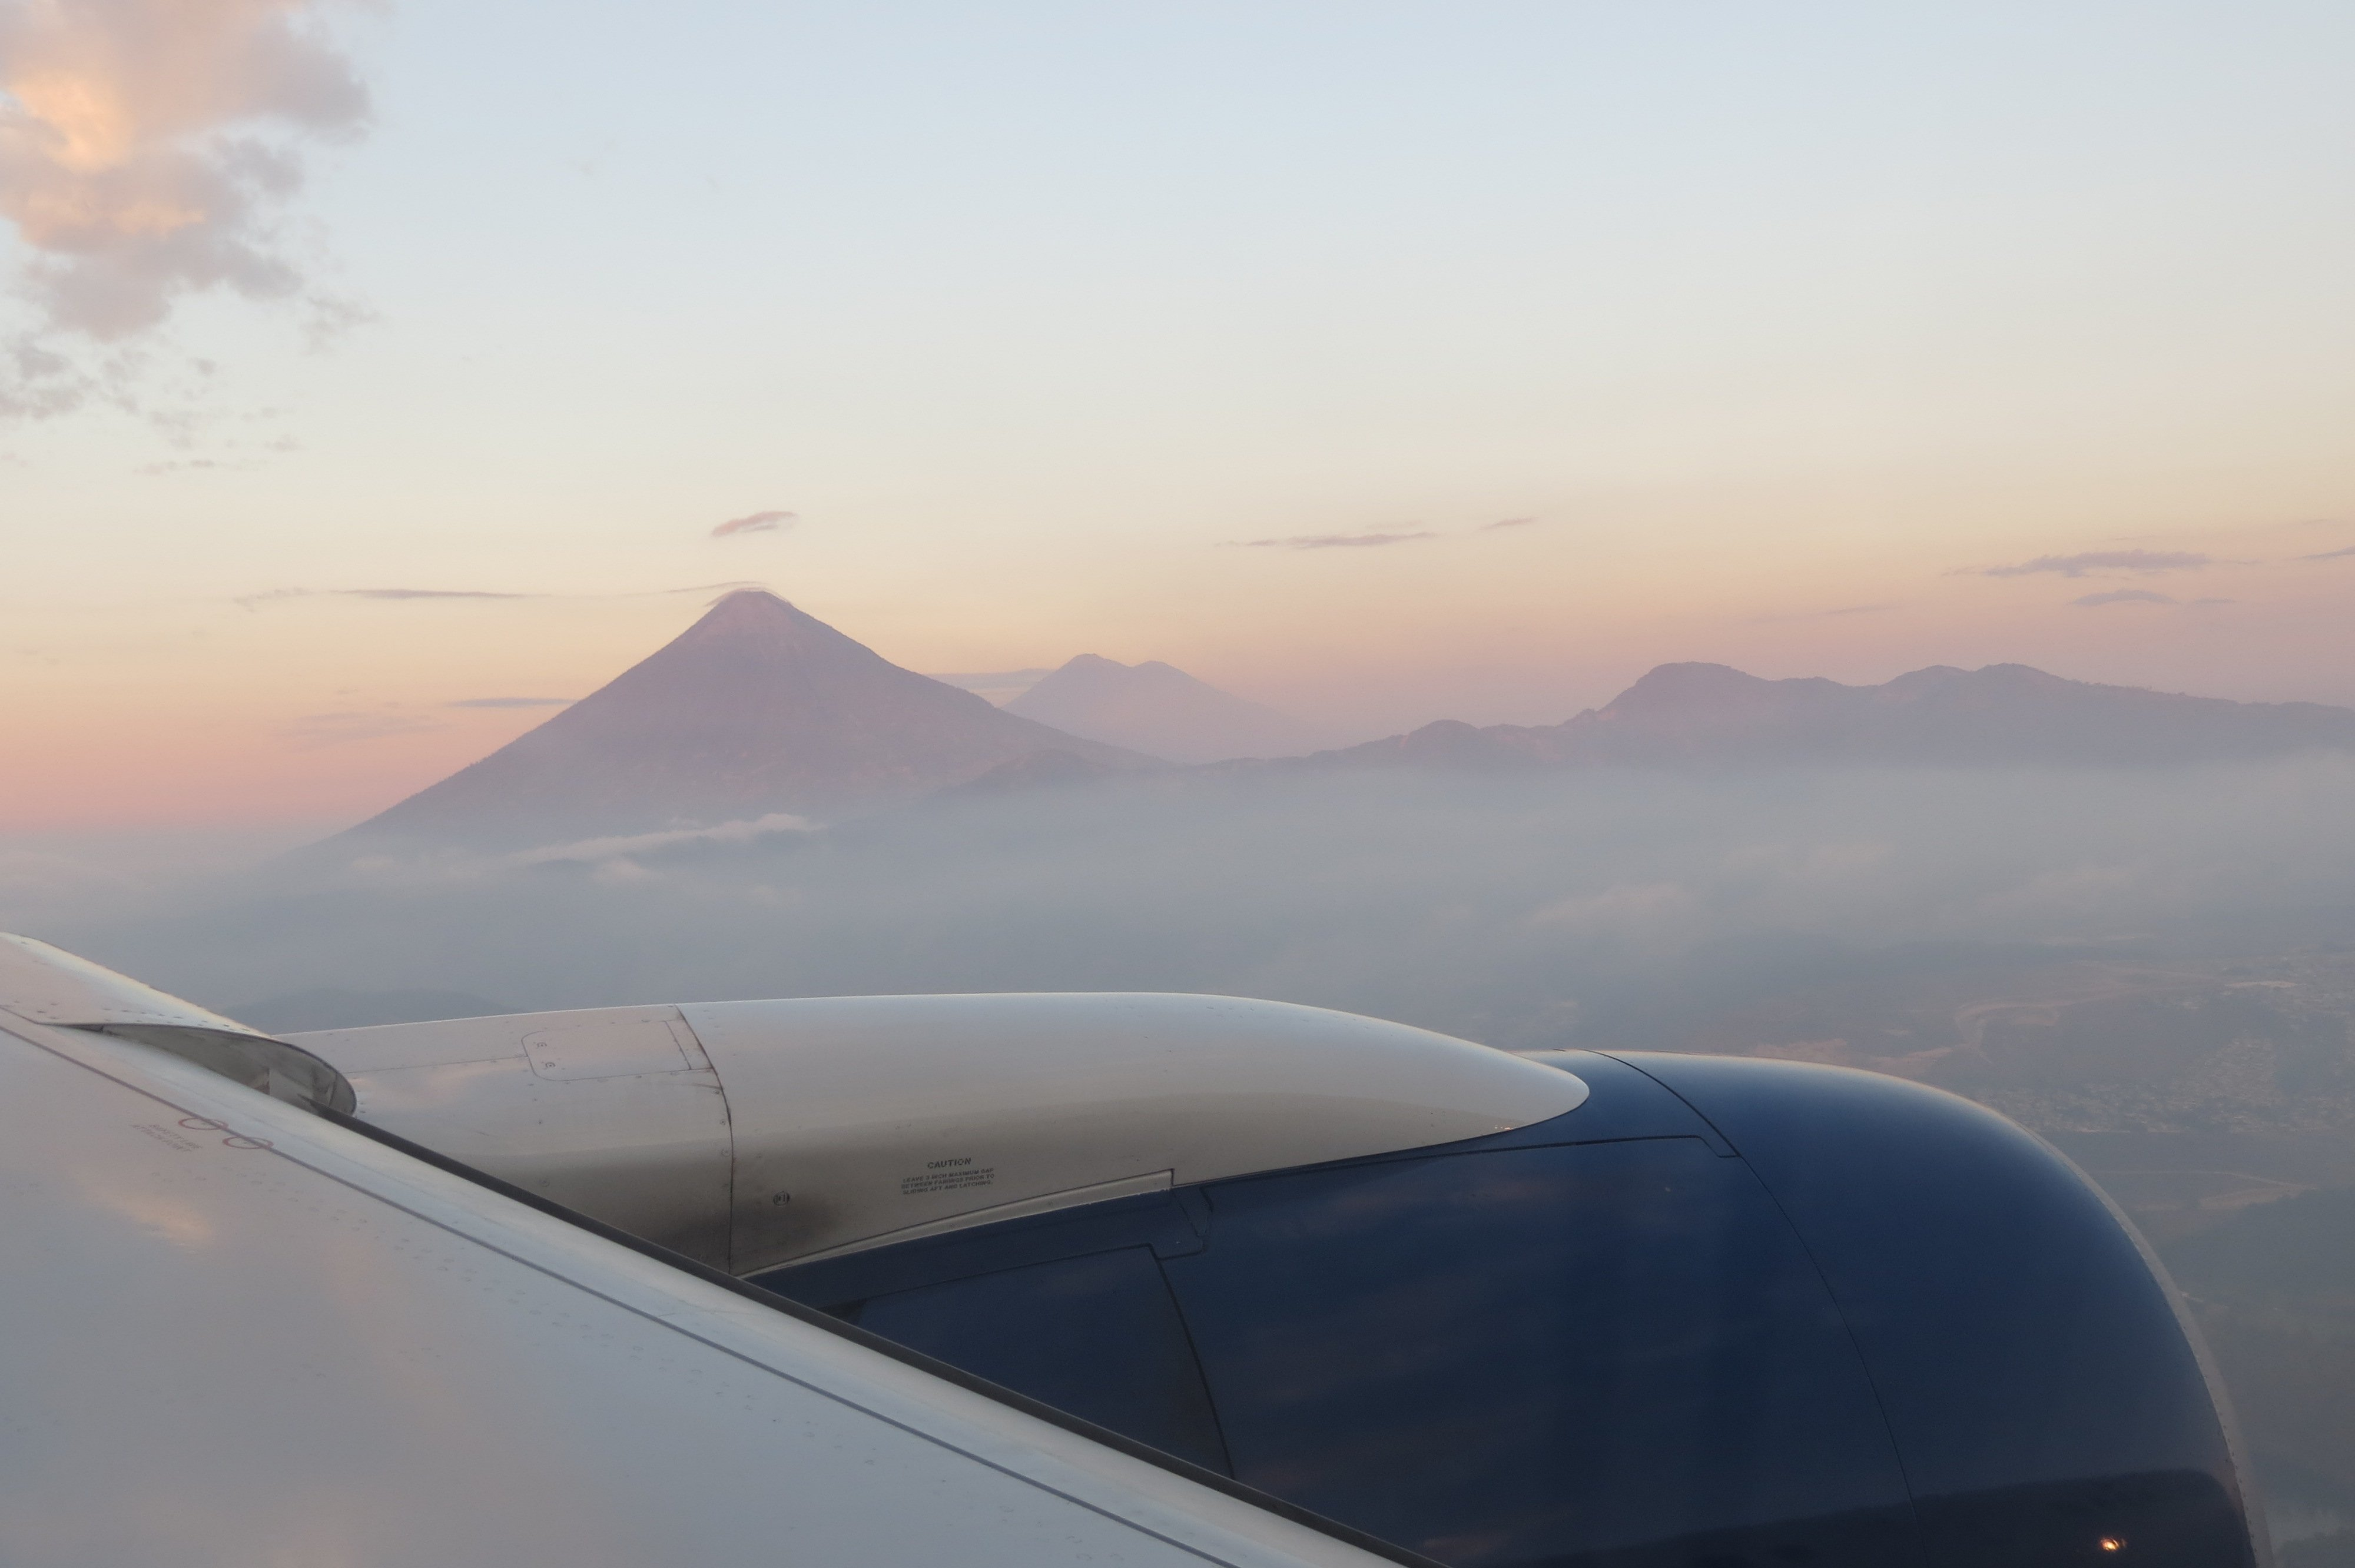 Acclimating in Guatemala City